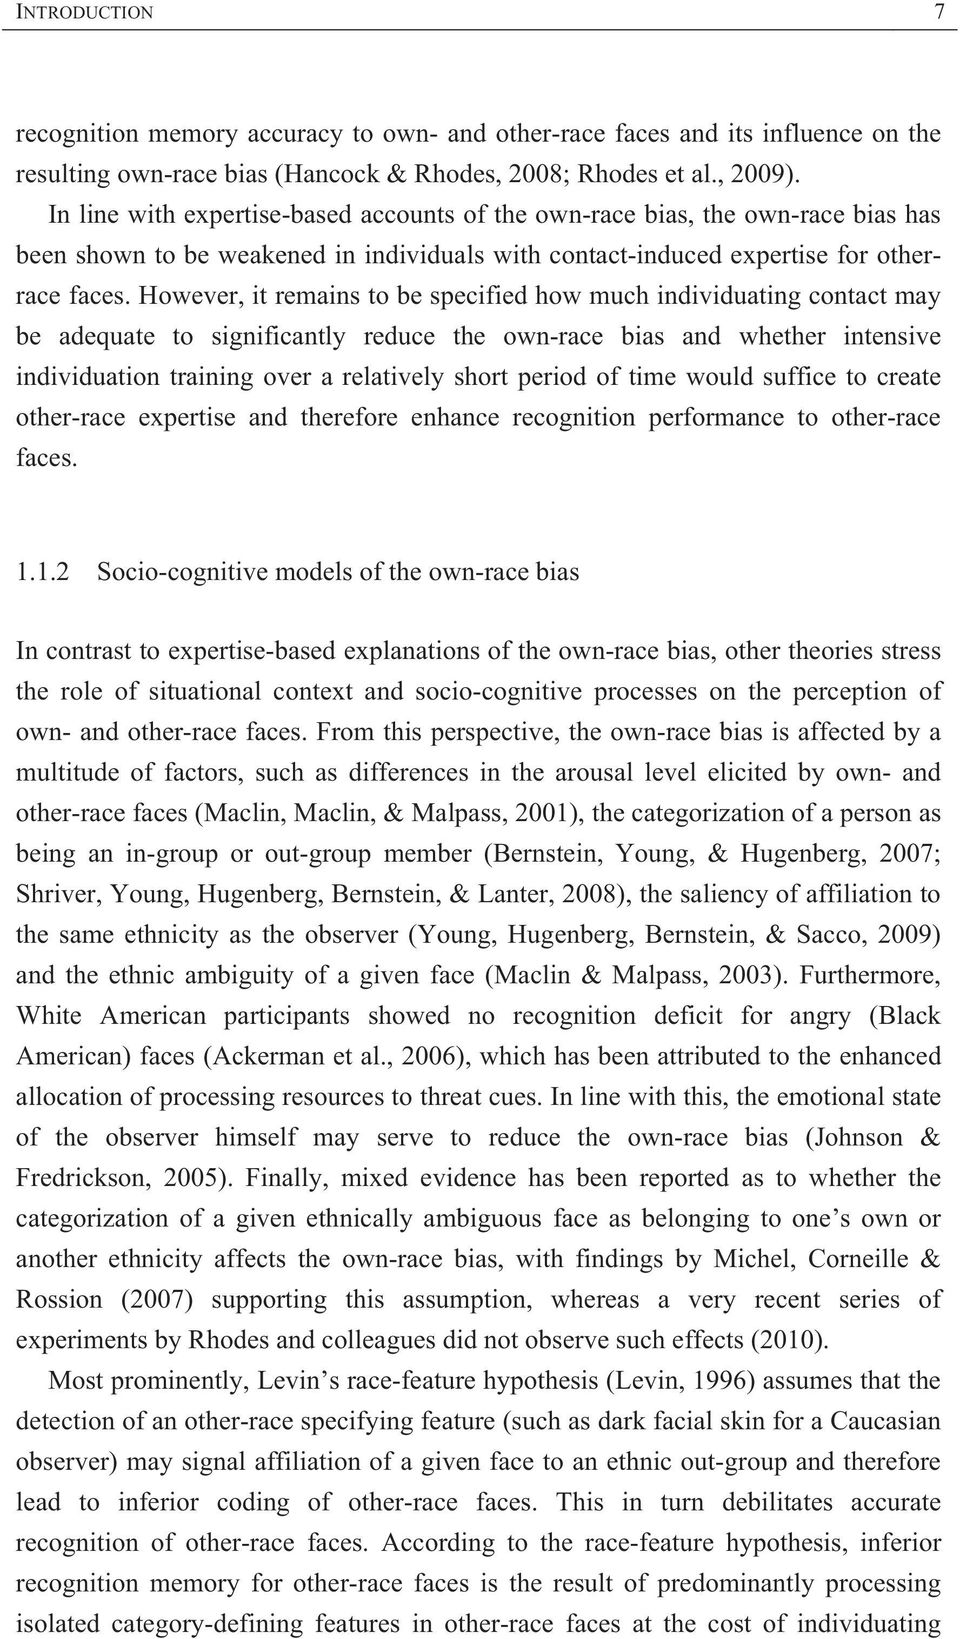 However, it remains to be specified how much individuating contact may be adequate to significantly reduce the own-race bias and whether intensive individuation training over a relatively short